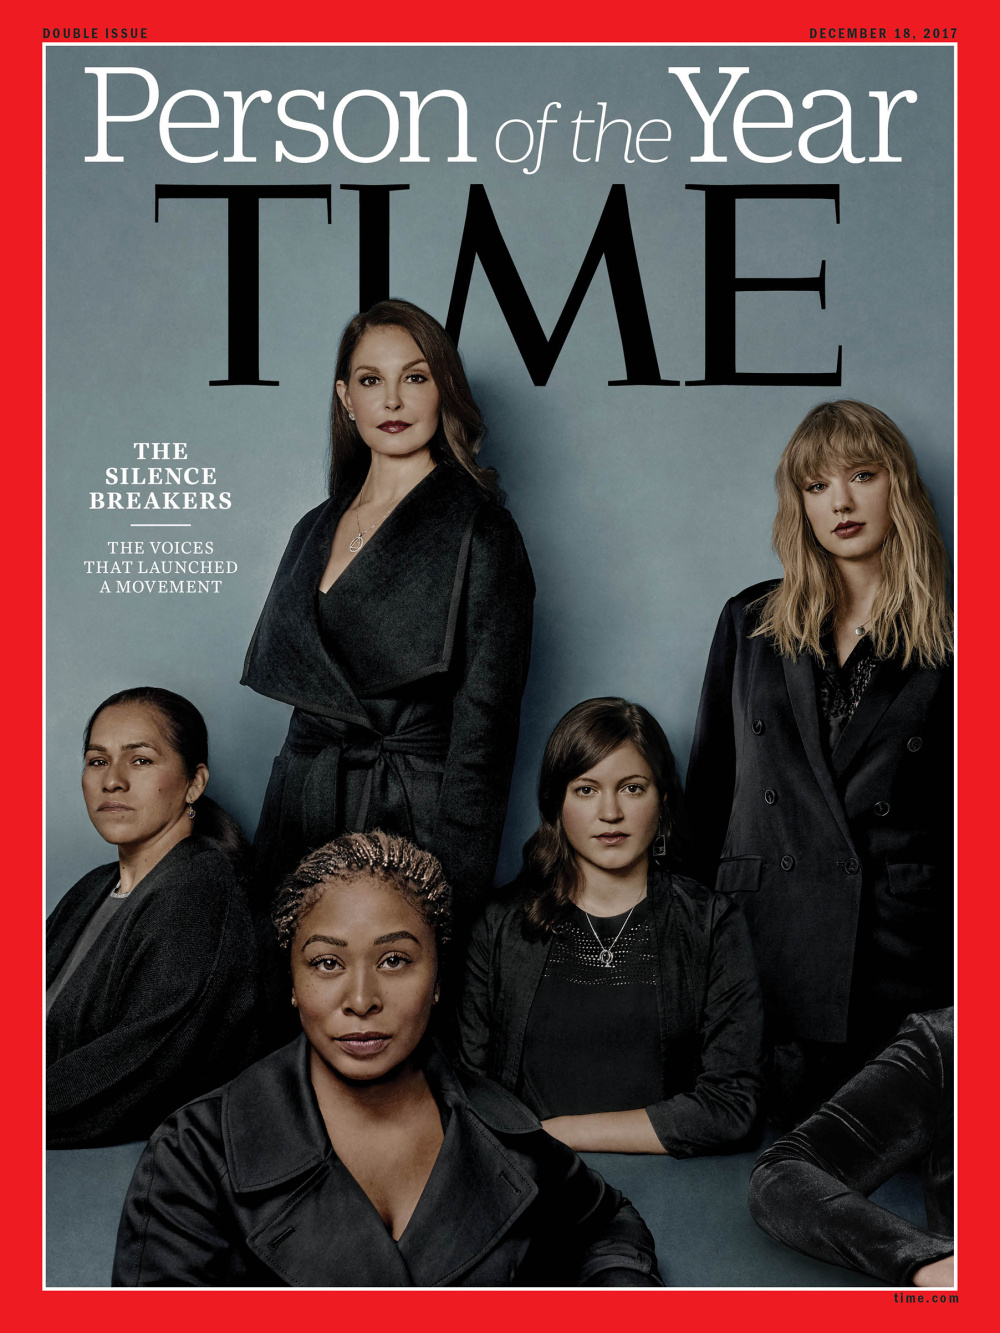 TIME Magazine's 2017 Persons of the Year cover features just a few of the Silence Breakers who helped launch the movement against sexual assault.